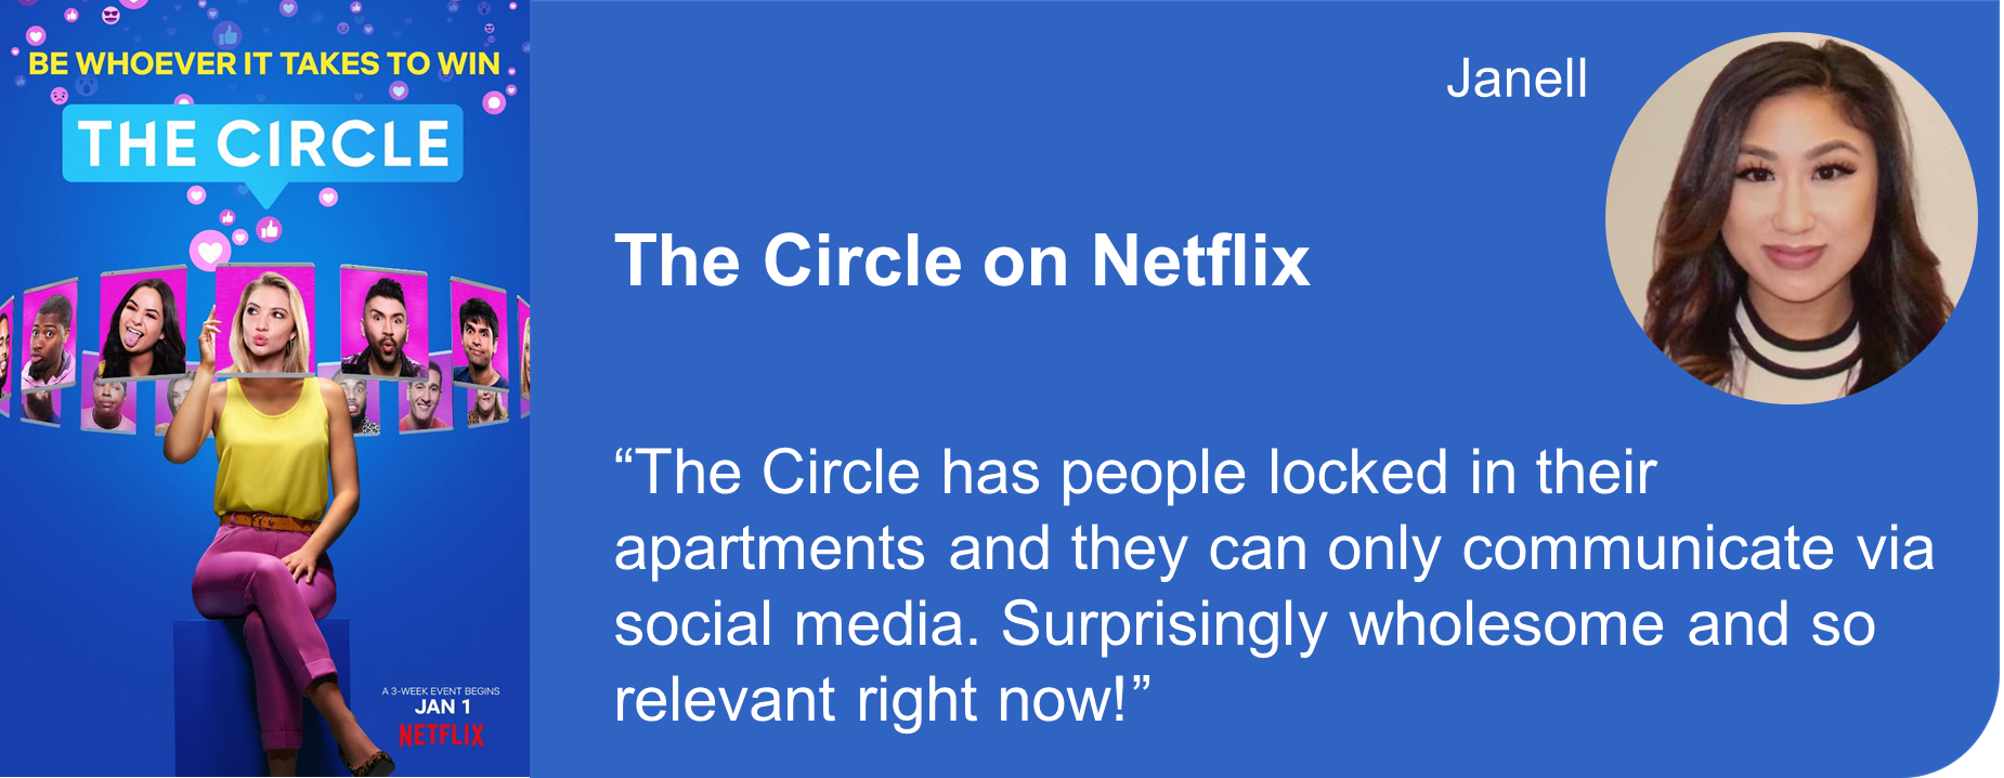 Creative Marketing Concepts Quarantine And Chill Binge-Worthy The Circle Netflix